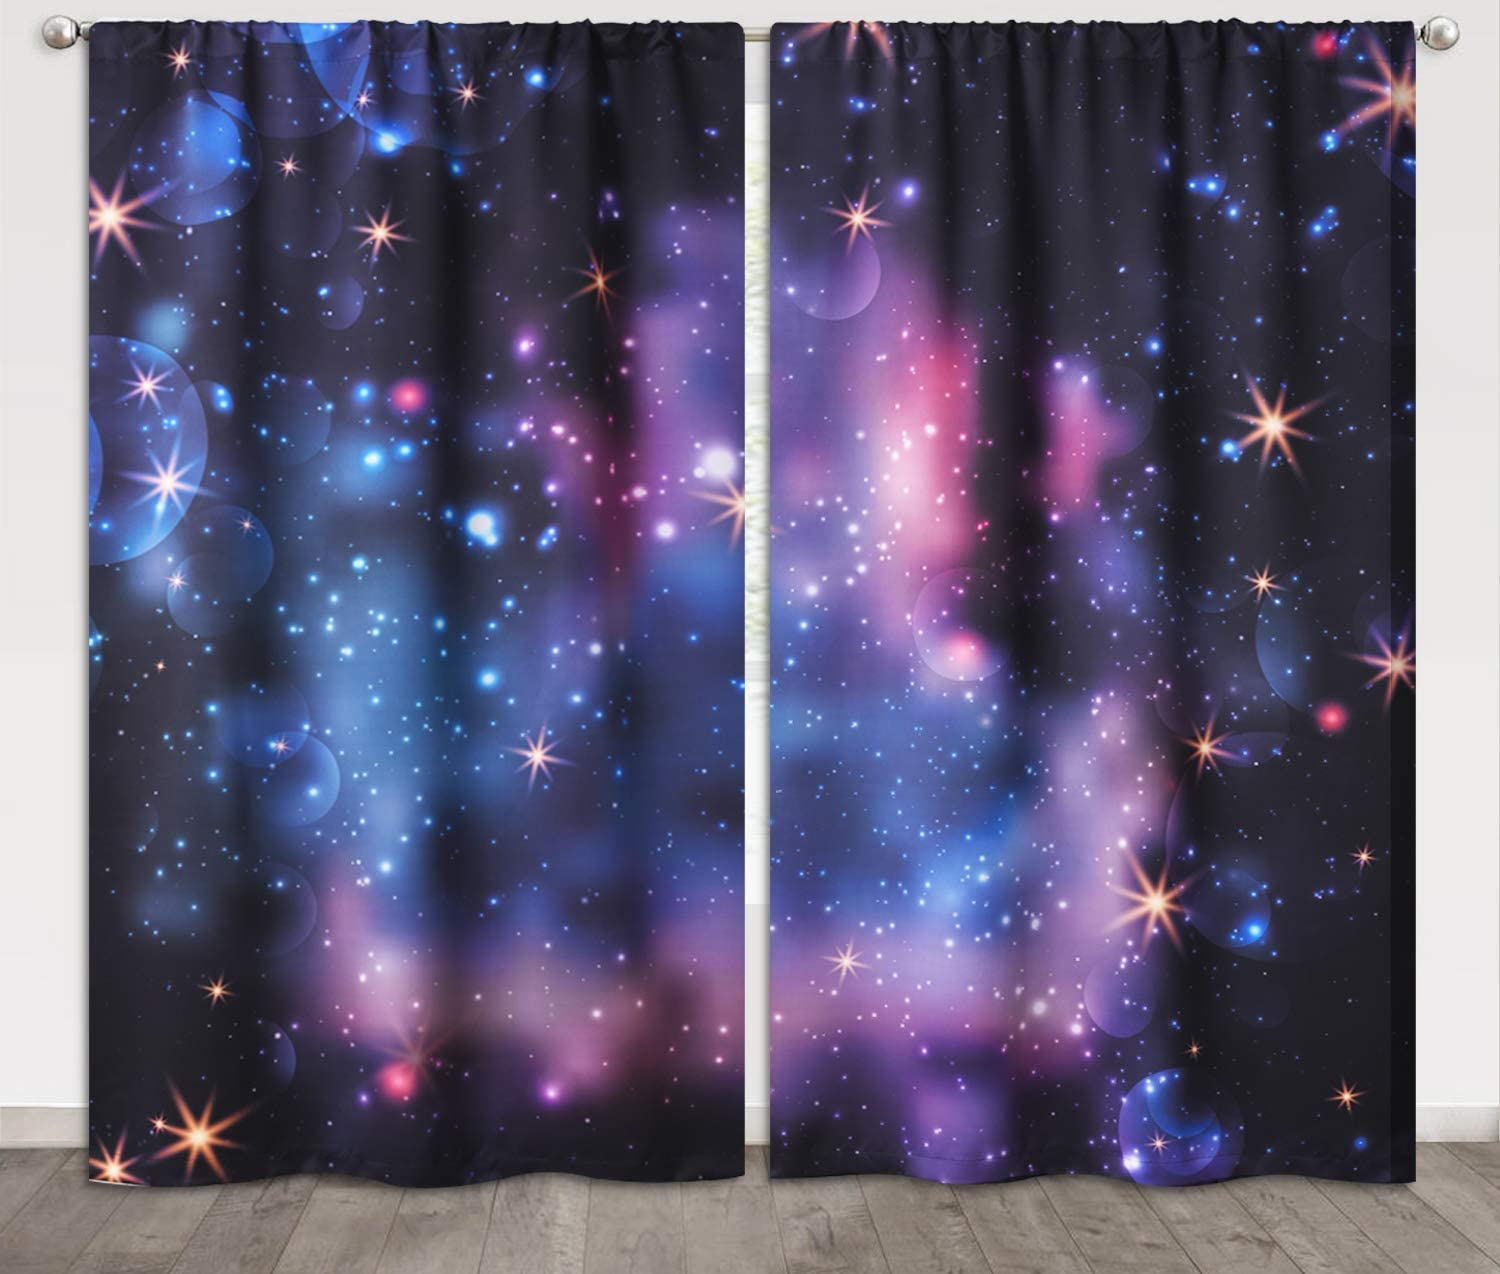 Amazon Com Kgorge Kids Curtains Room Darkening Galaxy Stars Universe Milky Way Print Curtains Thermal Insulated Privacy Panels For Kitchen Bedroom Office Room Divider Window Decor 52 X 84 Inches 1 Pair